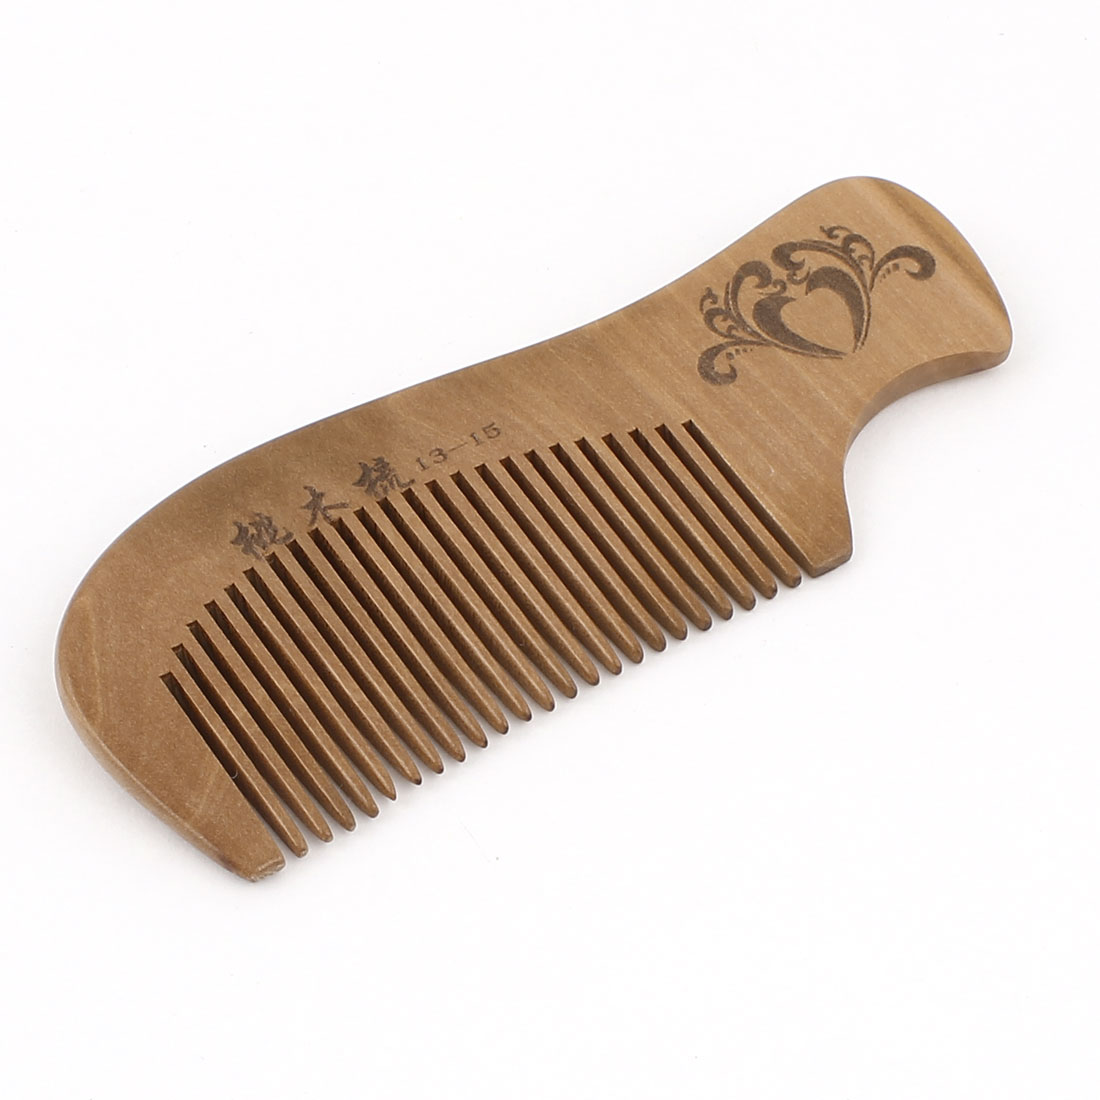 "4.9"" Length Handwork Natural Carved Wooden Bush Hair Care Comb"